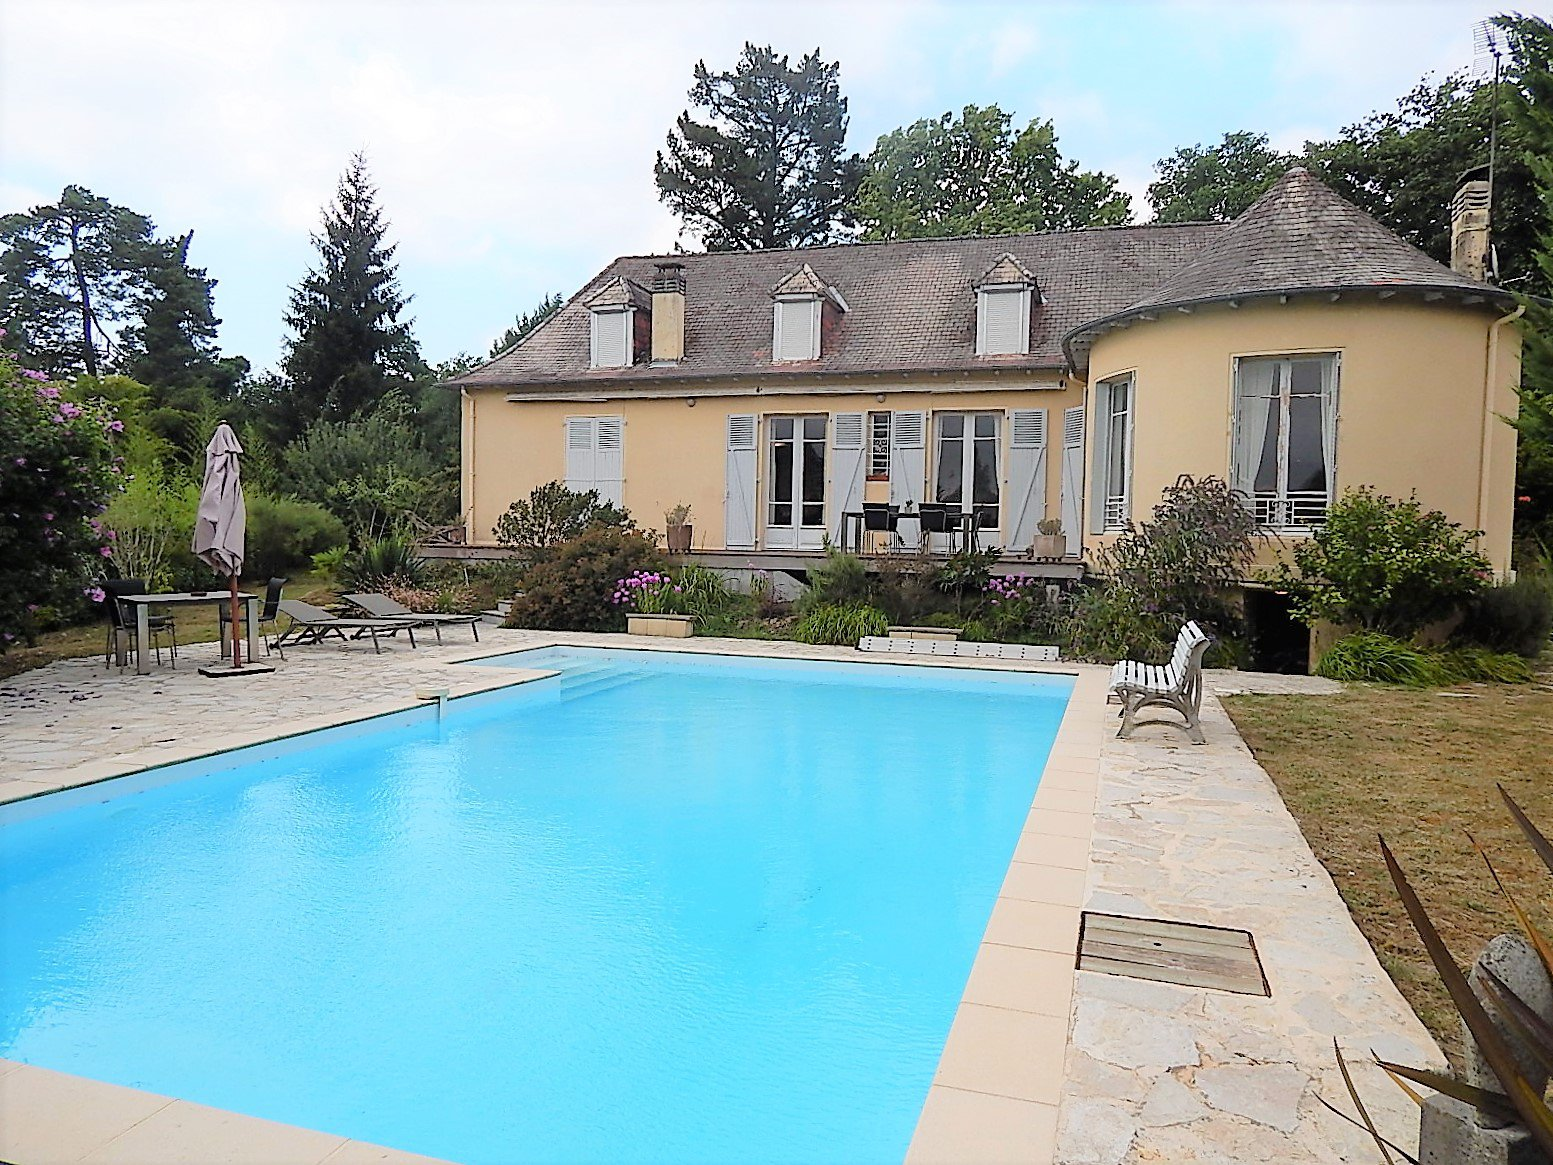 SALIES DE BEARN - Great house and gîte near centre of town, with garden and pool.